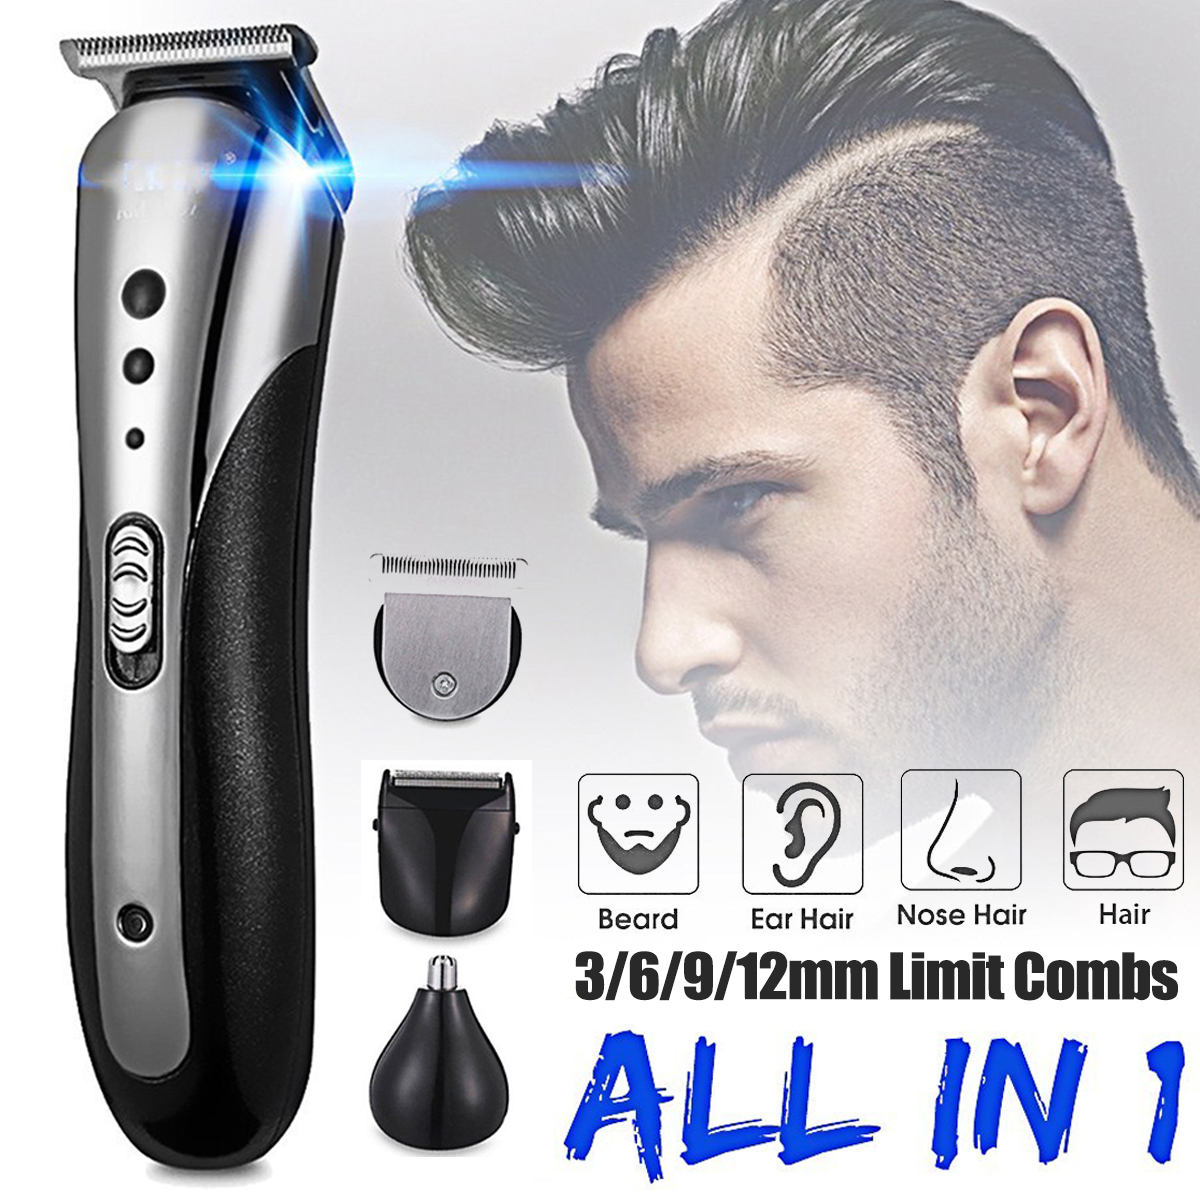 Kemei All In 1 Cordless Electric Men S Personal Grooming Kit Beard Shaver Razor Hair Clipper Nose Trimmer Rechargeable Walmart Com Walmart Com